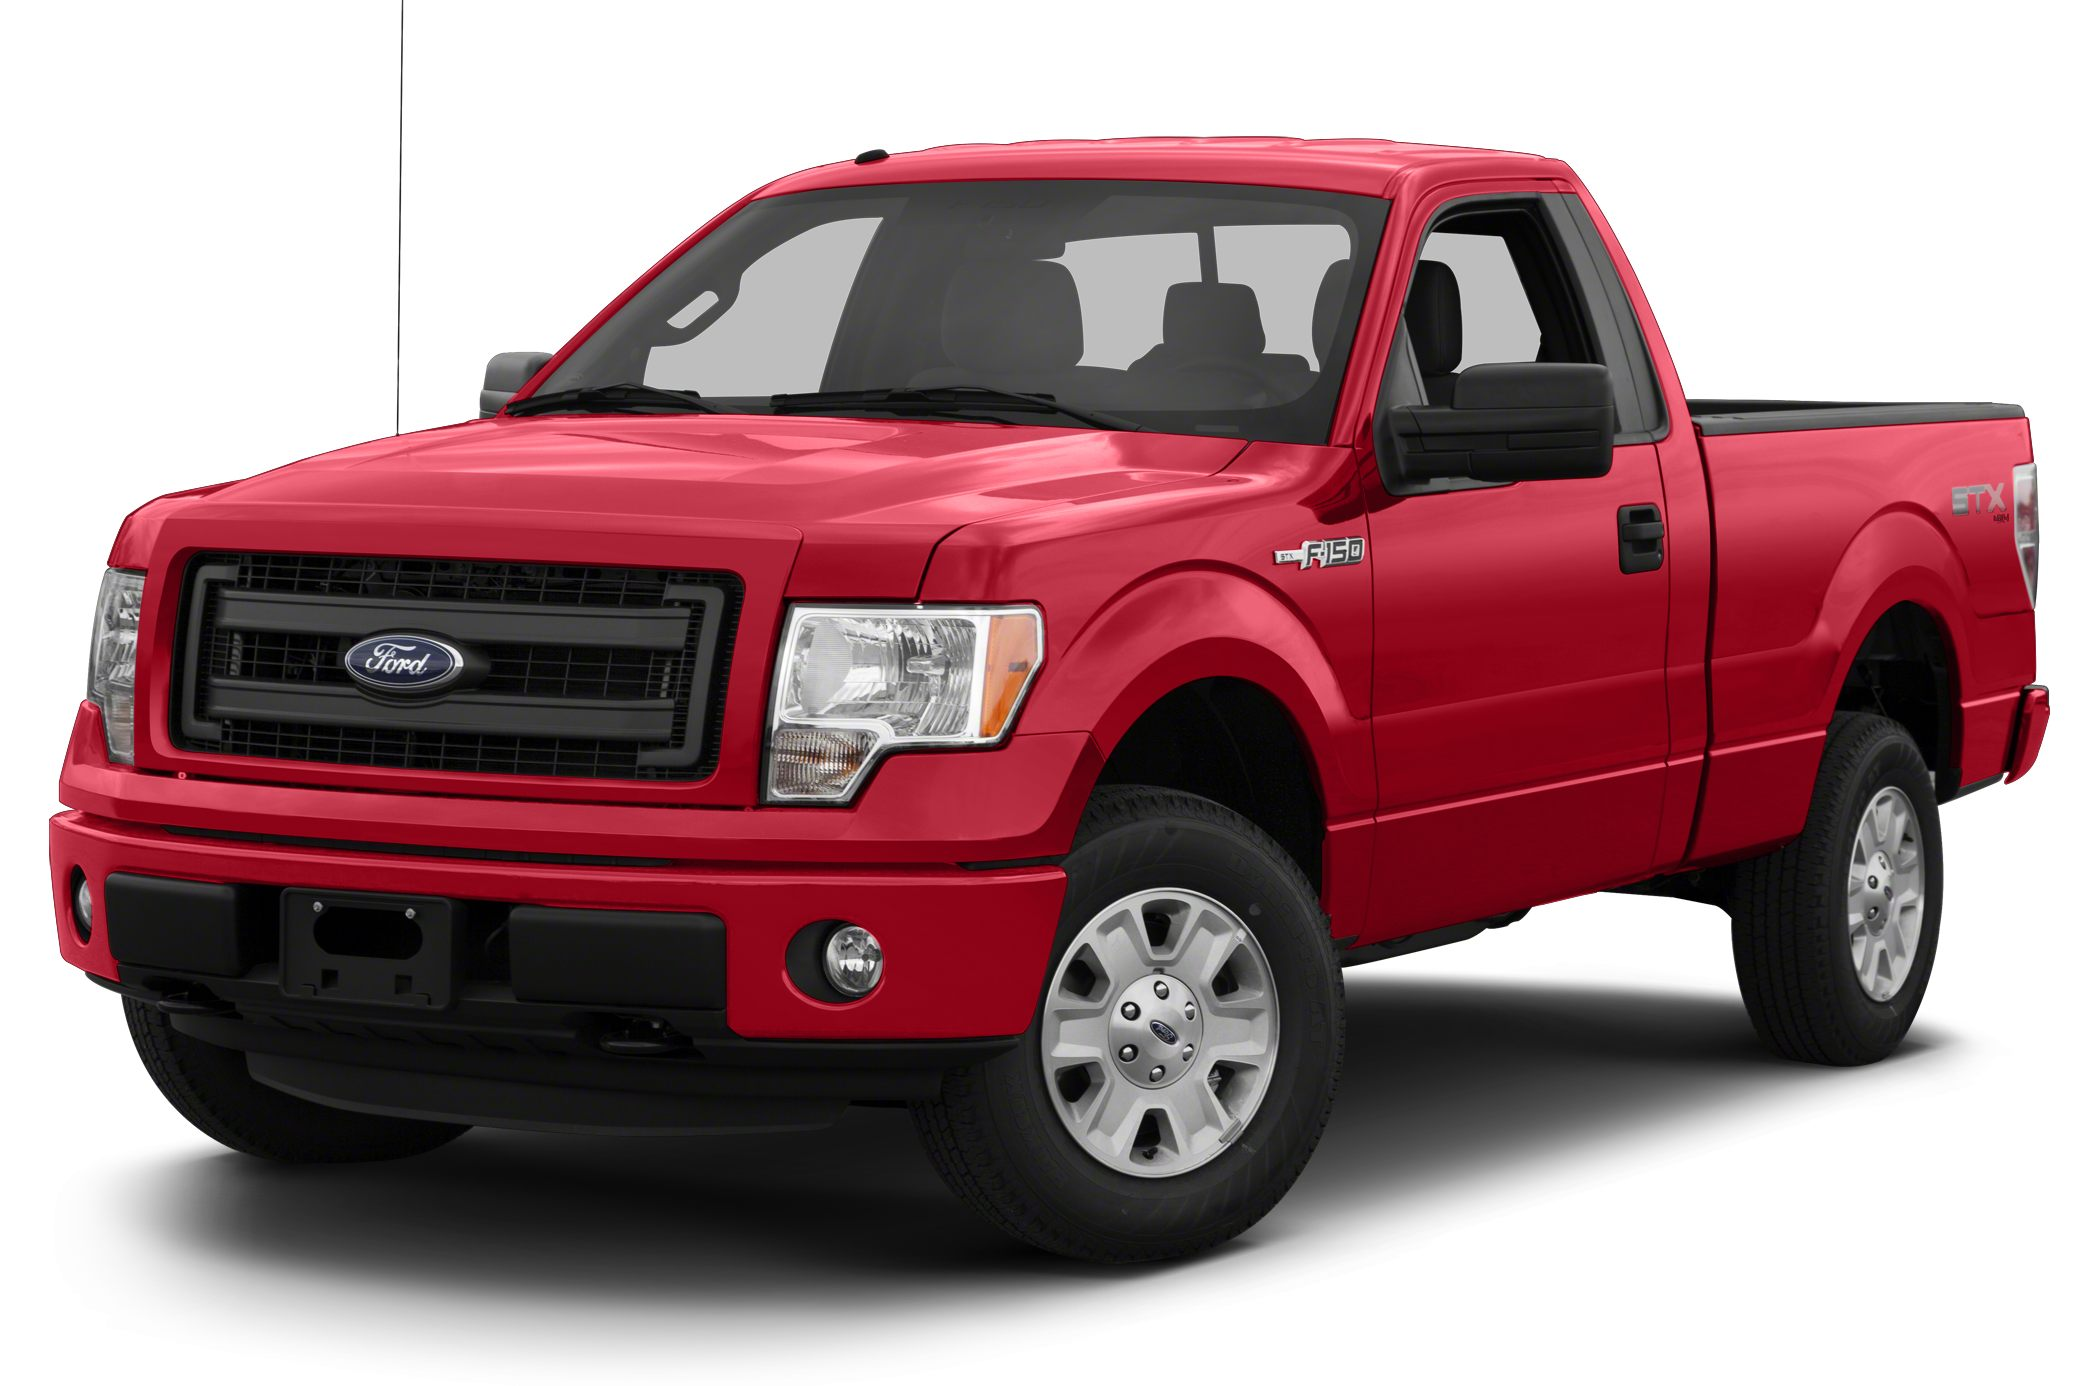 2013 Ford F150 STX Extended Cab Pickup for sale in Bradenton for $29,991 with 18,120 miles.